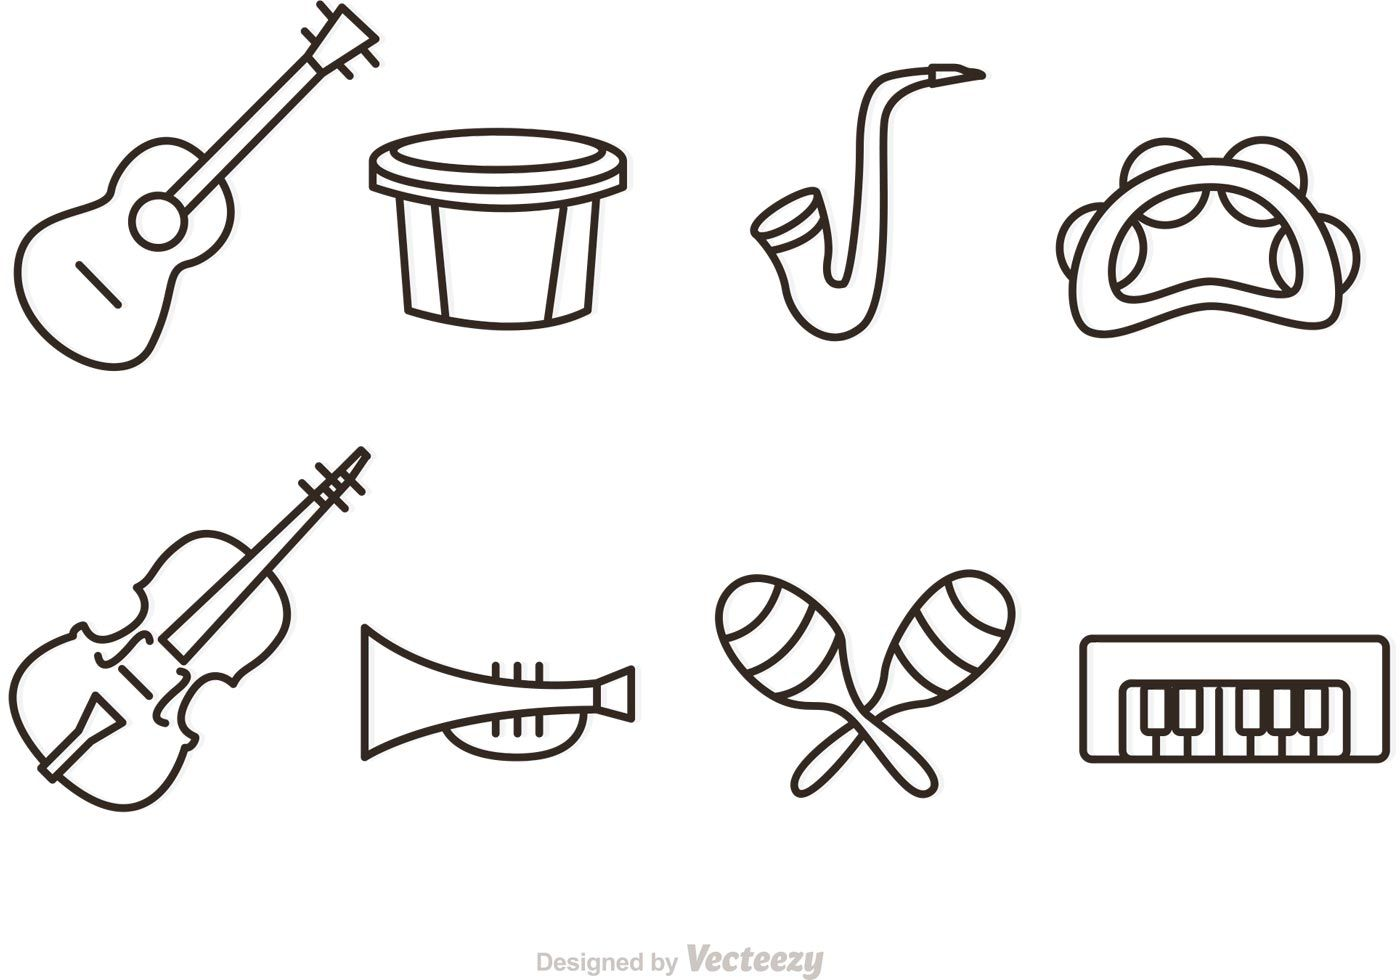 Set of music instrument icons in an outline style